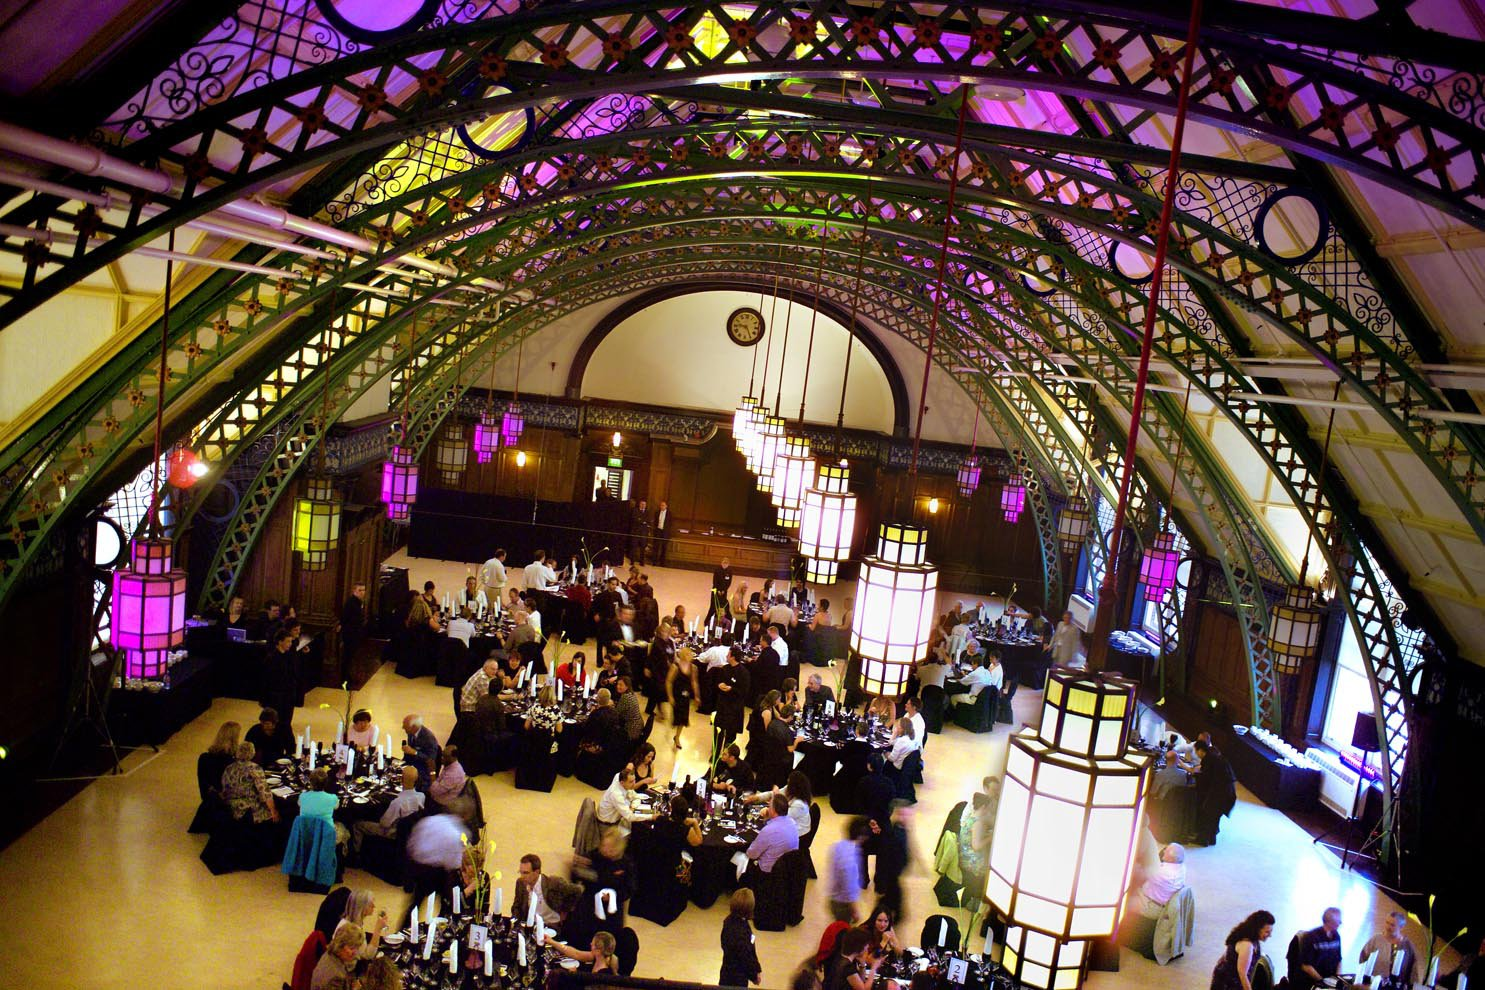 Corporate dinner event in the magnificent Great Hall